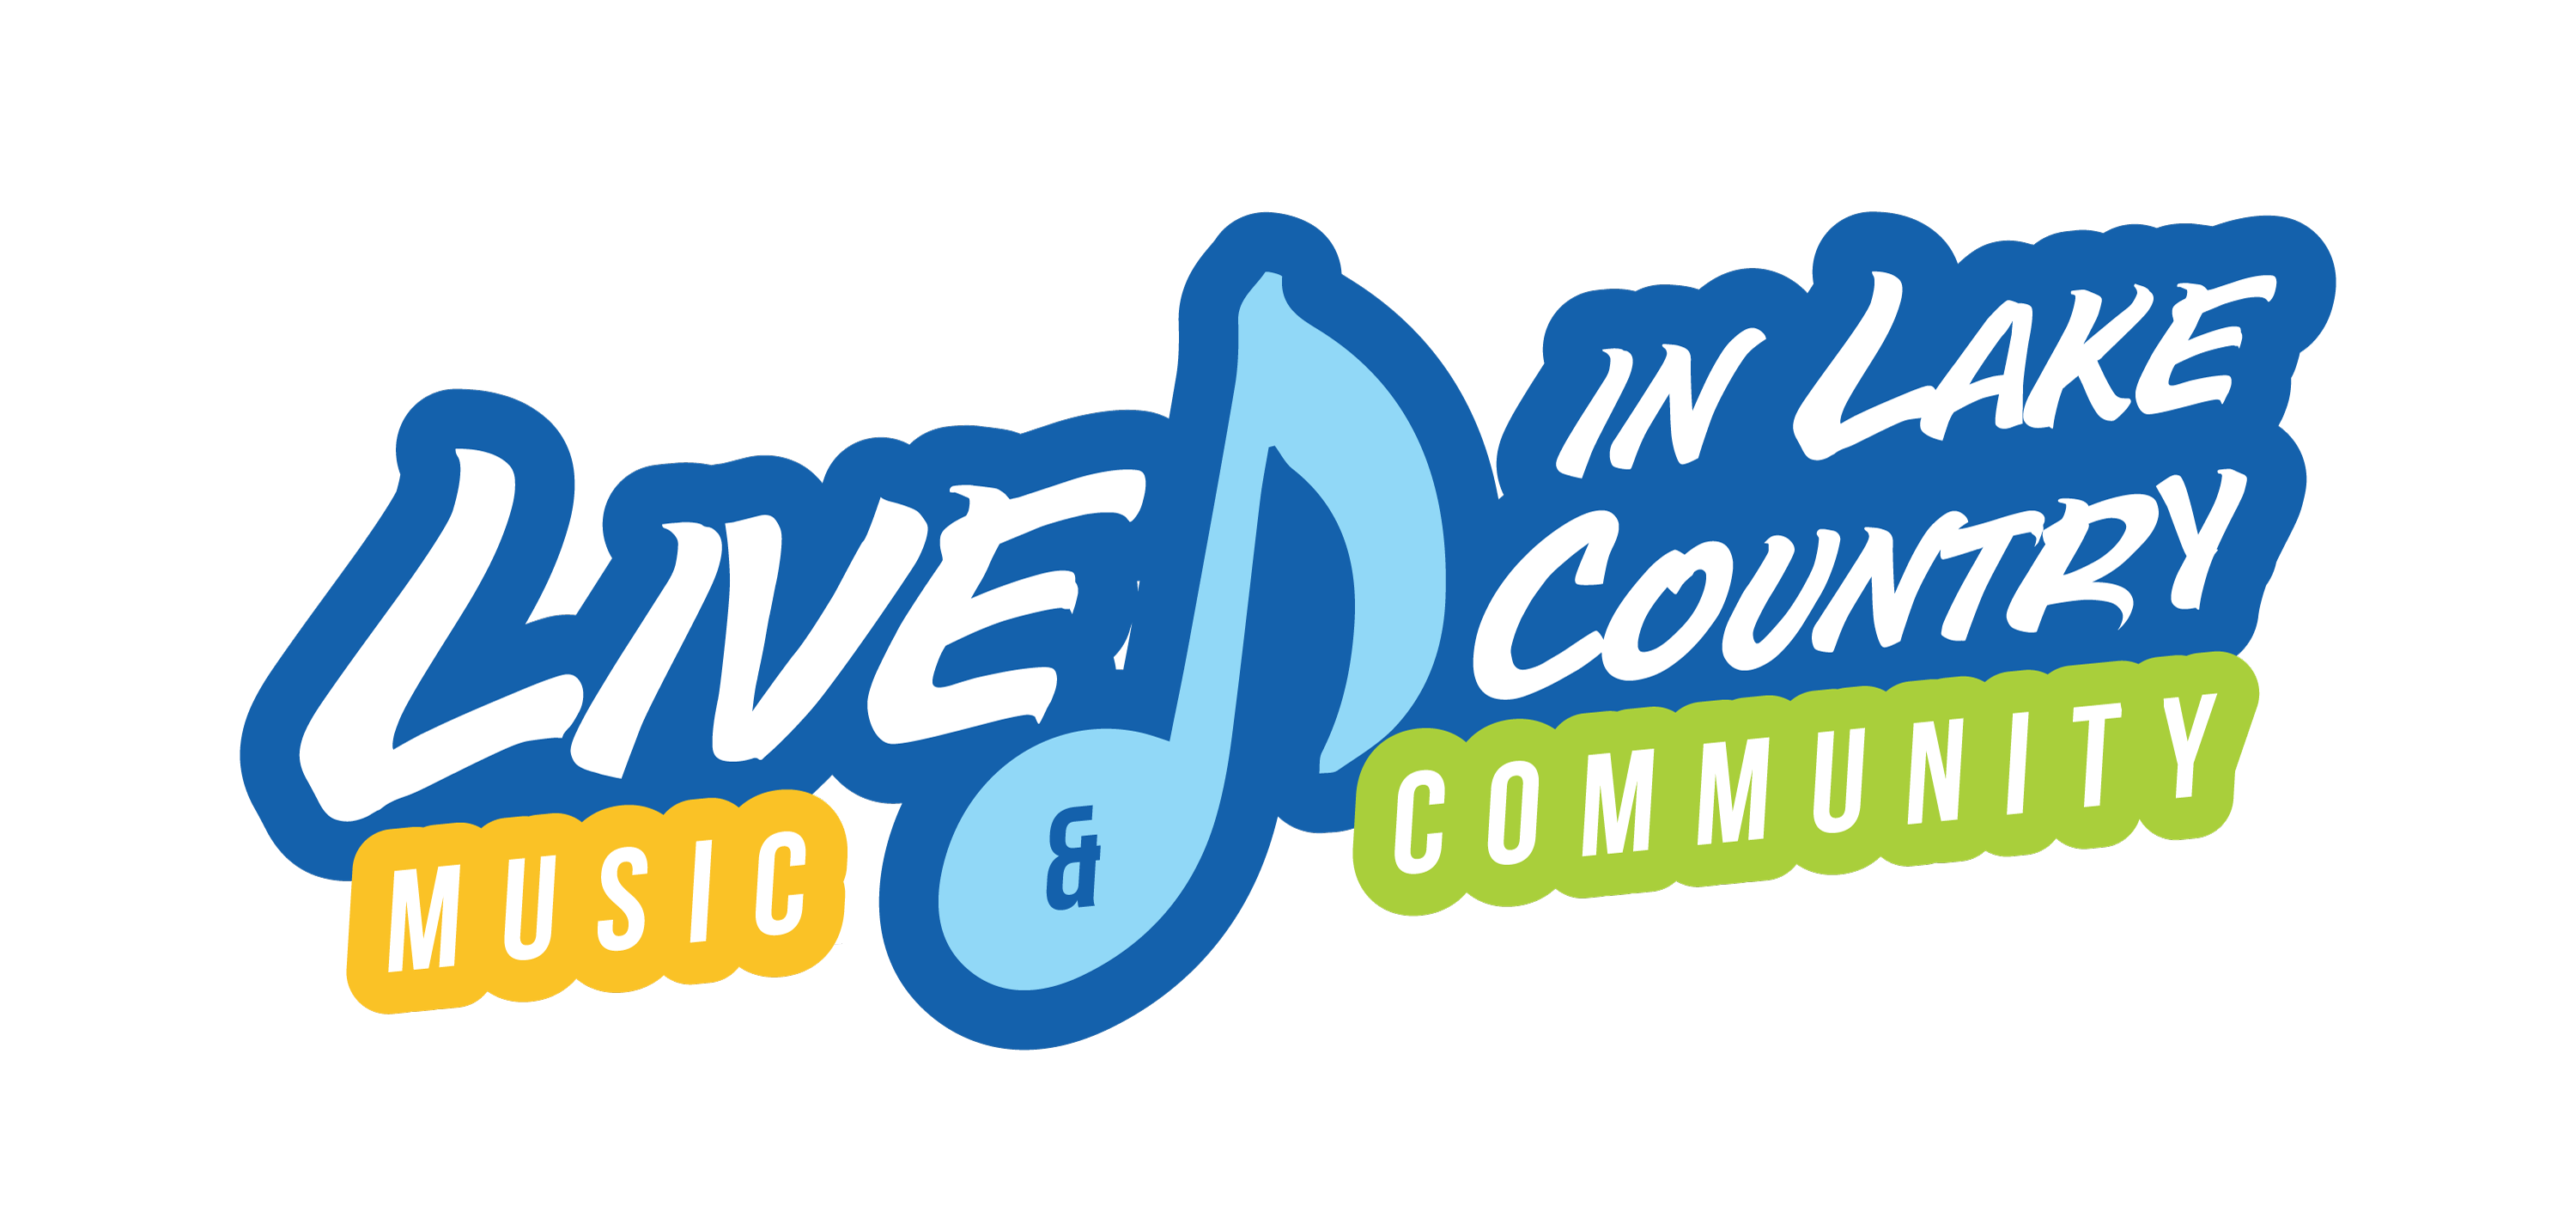 Live in Lake Country Logo